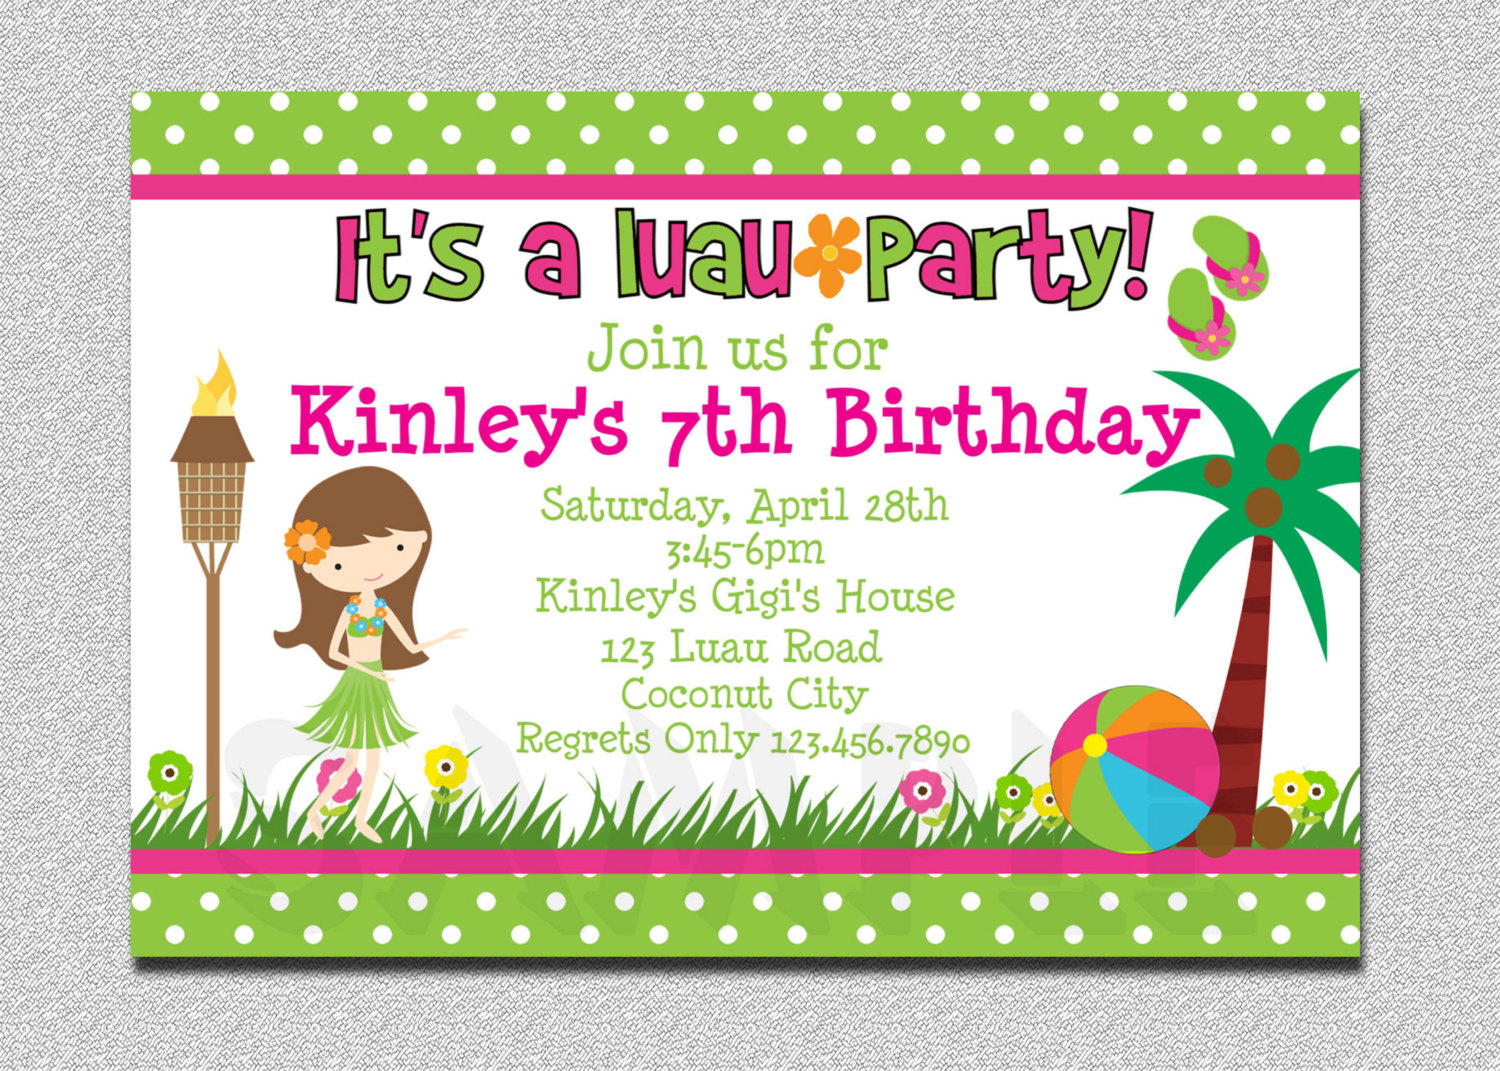 20 luau birthday invitations designs birthday party invitations luau birthday invitations filmwisefo Image collections